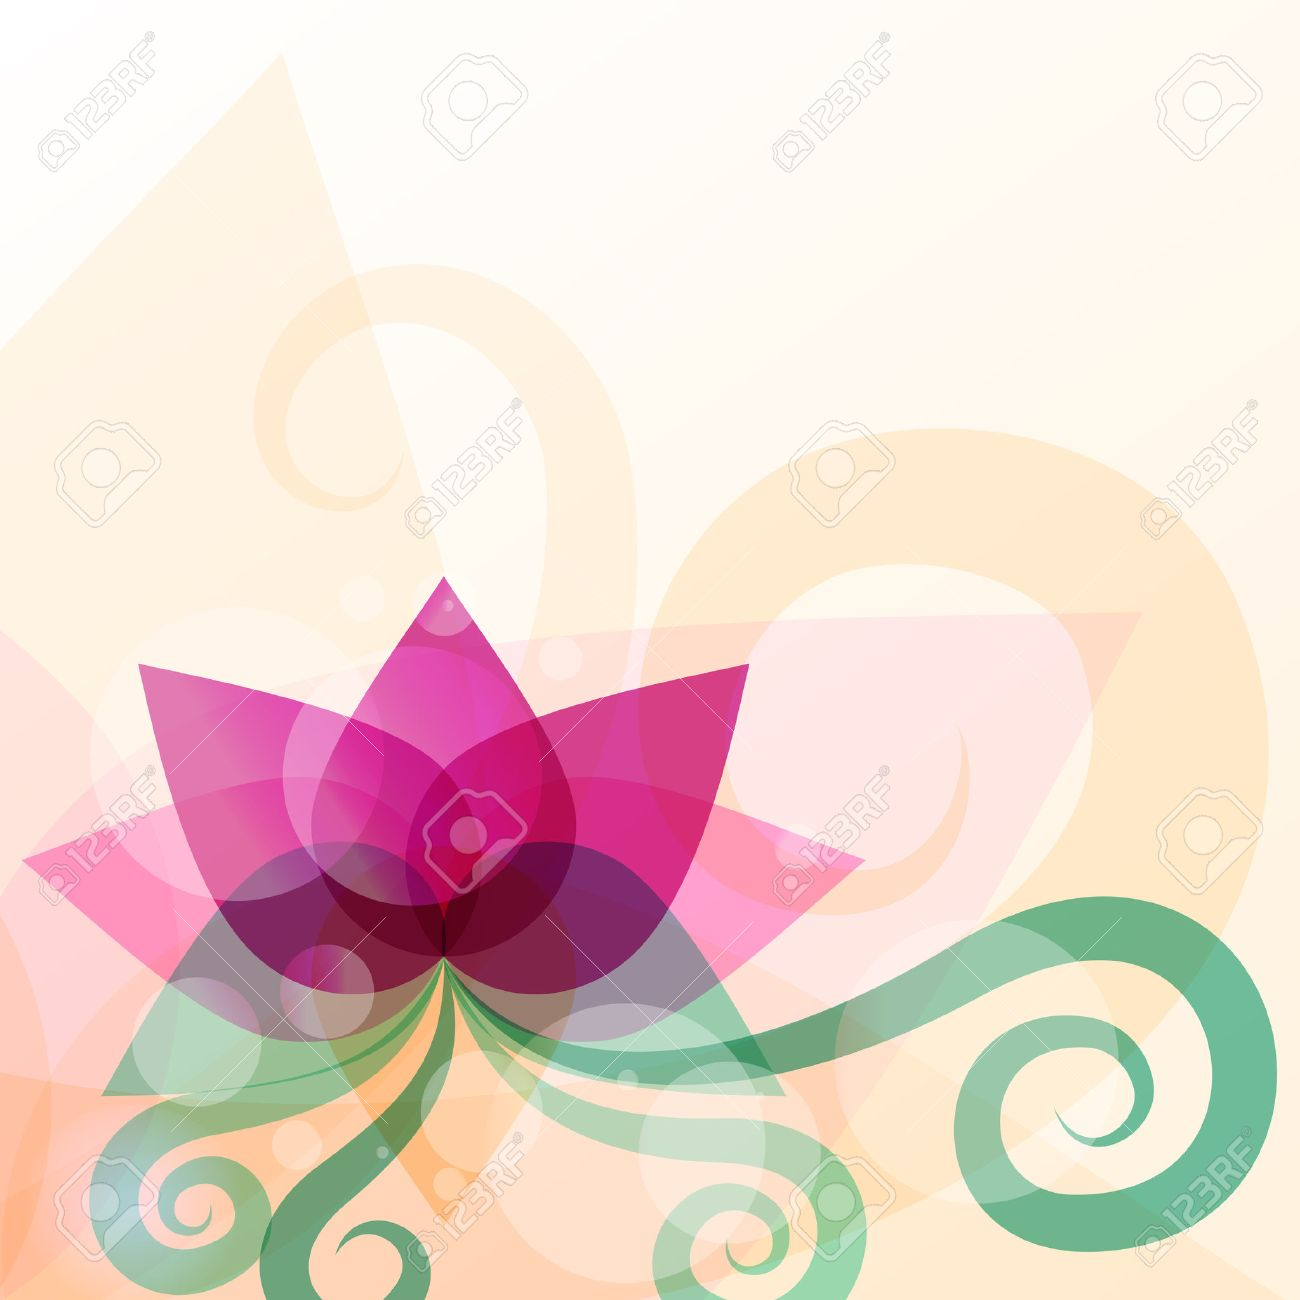 Beautiful Lotus Flower Illustration Vector Abstract Background